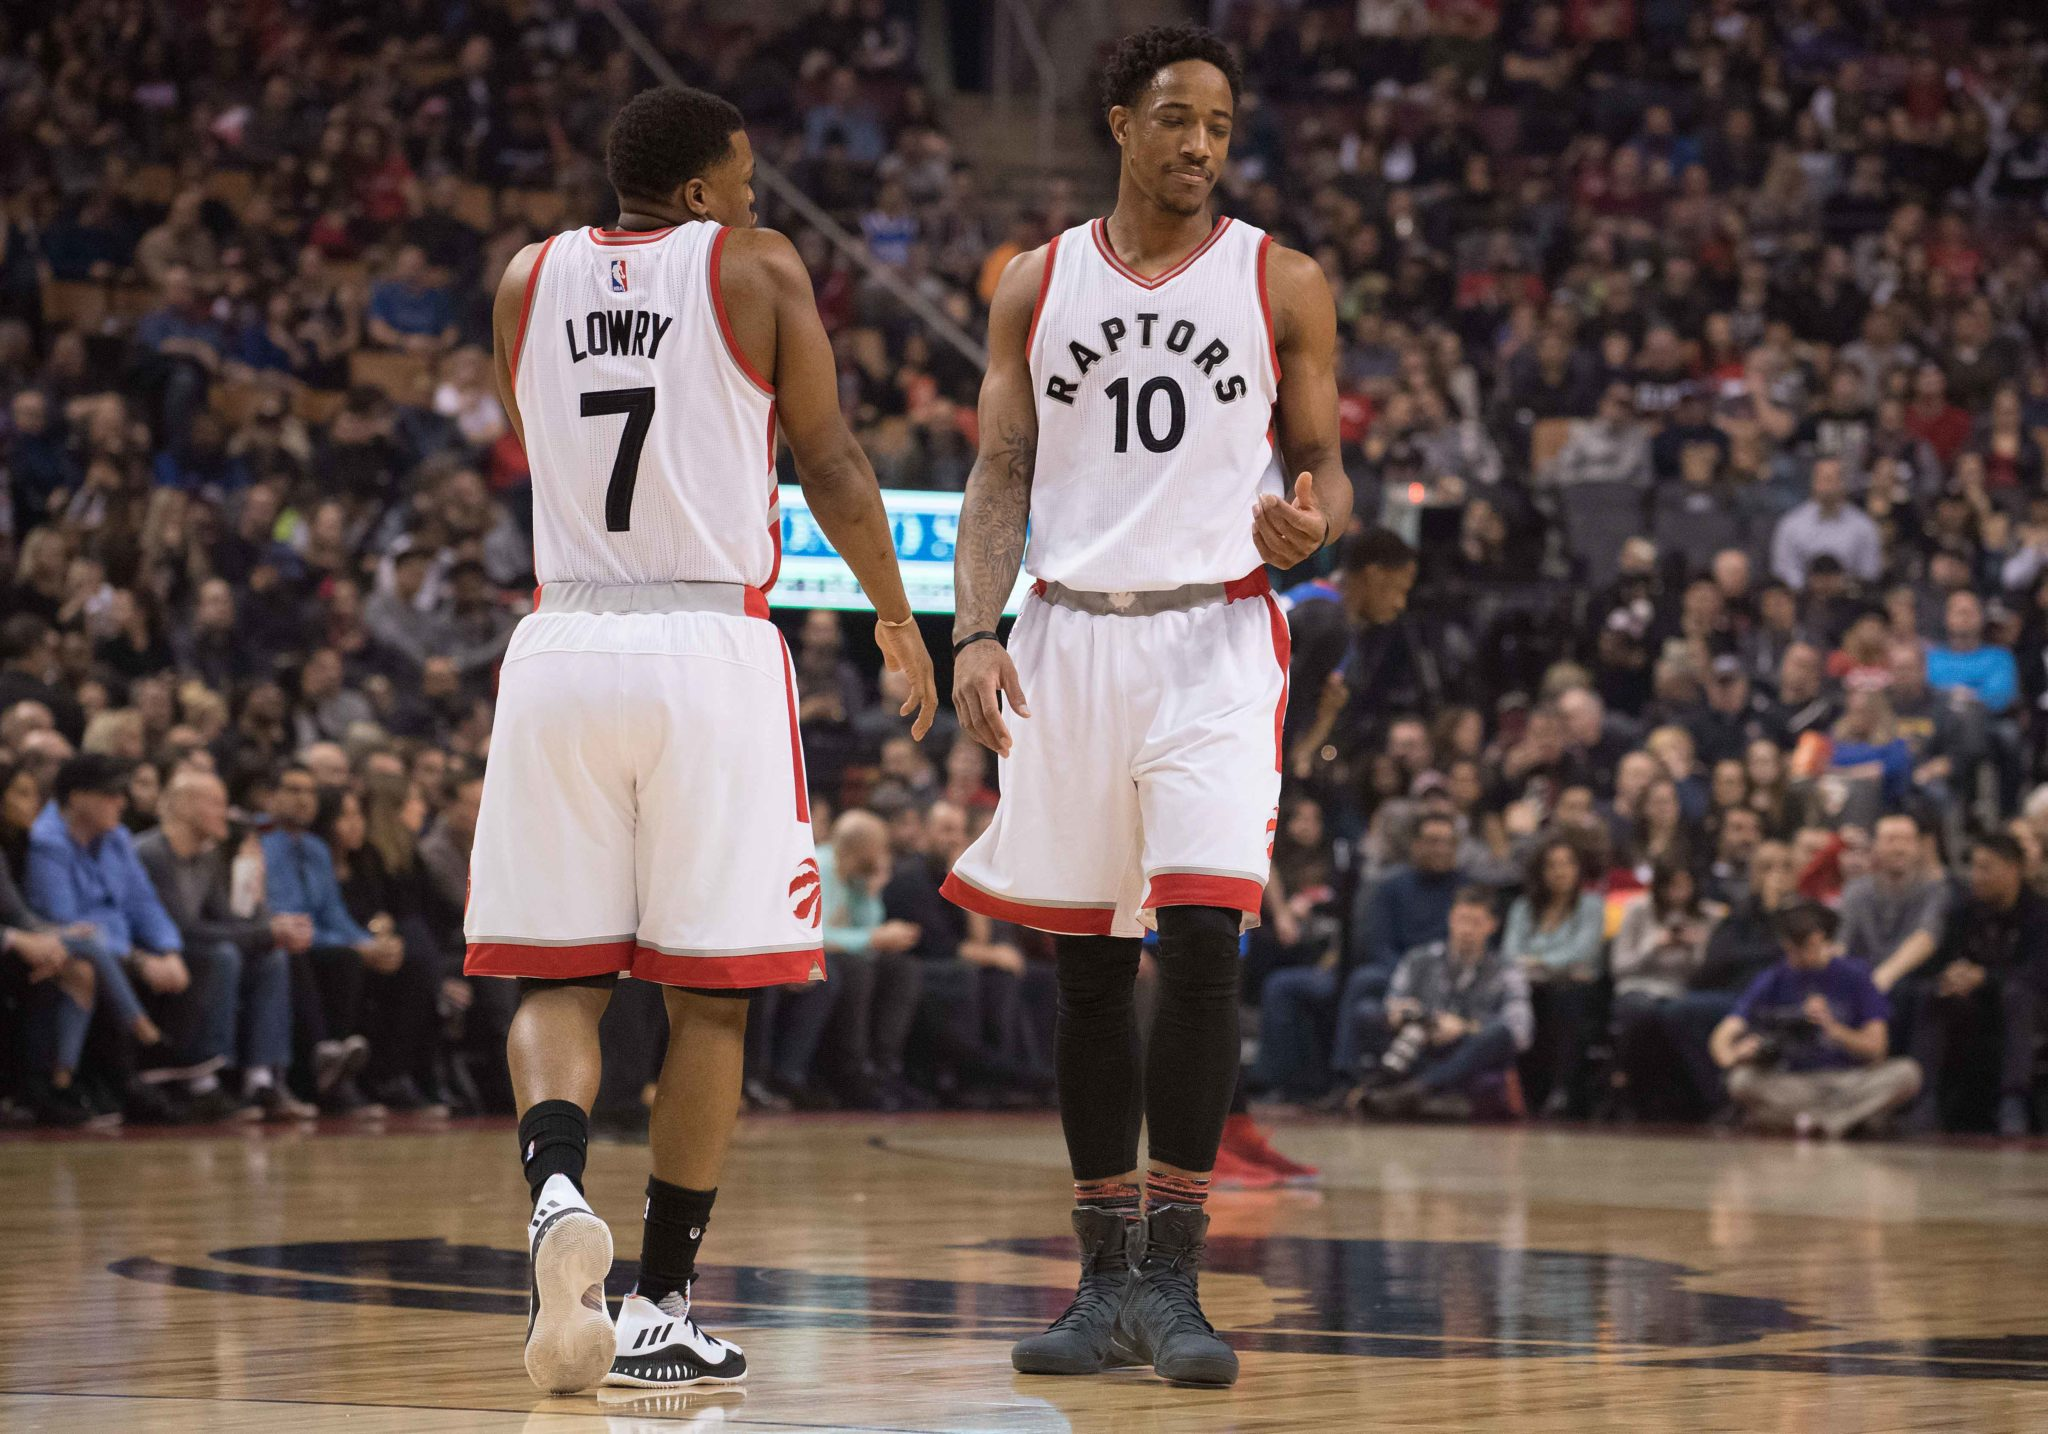 39522ab77e8b DeMar DeRozan And Kyle Lowry s Playoff Struggles Are Now Normal